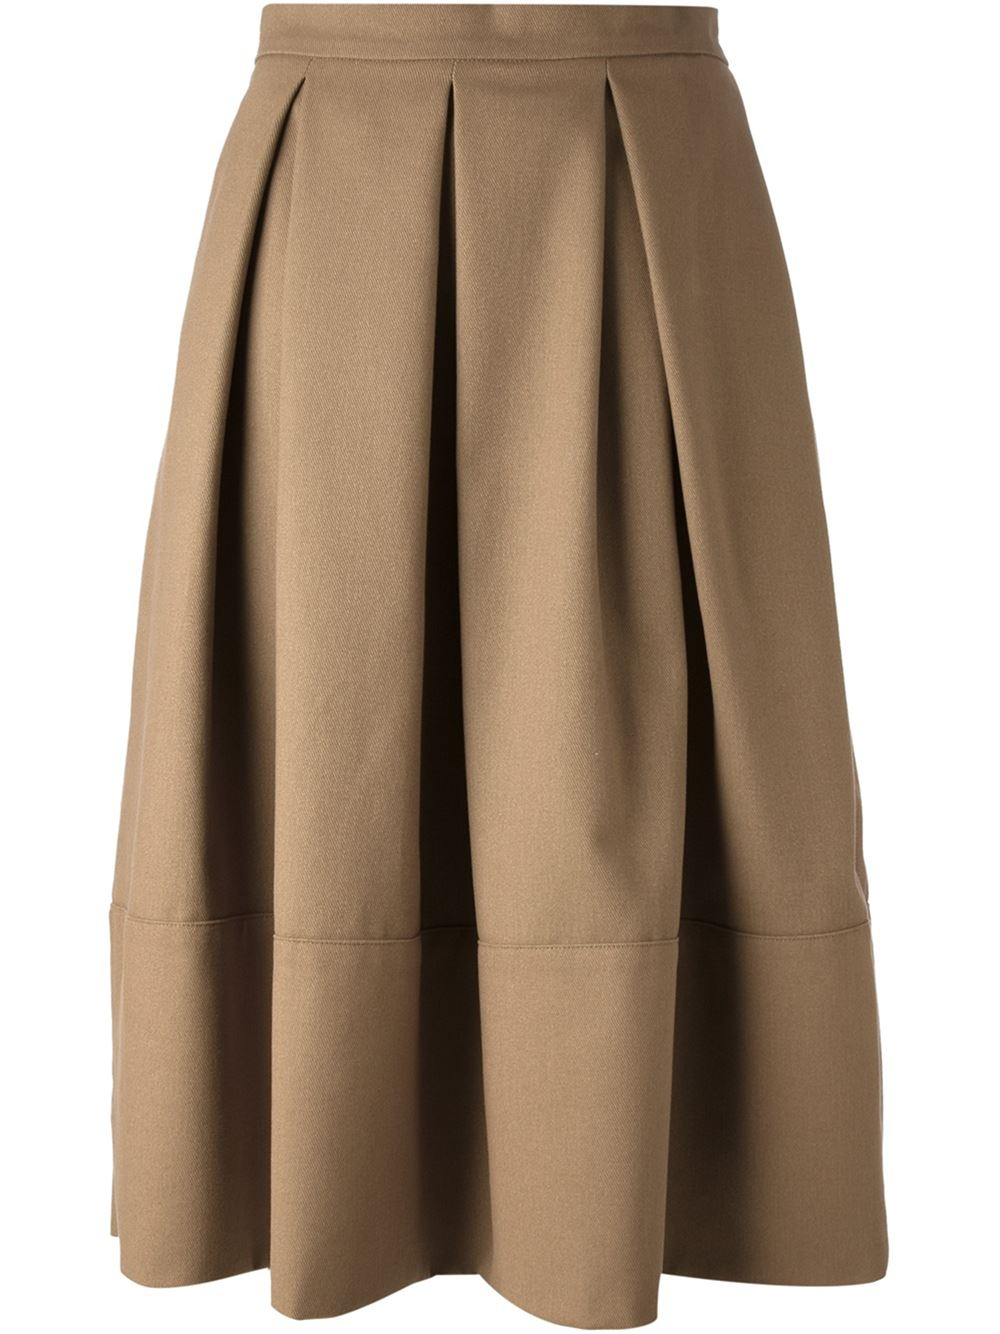 Societe anonyme Box Pleat Midi Skirt in Natural | Lyst